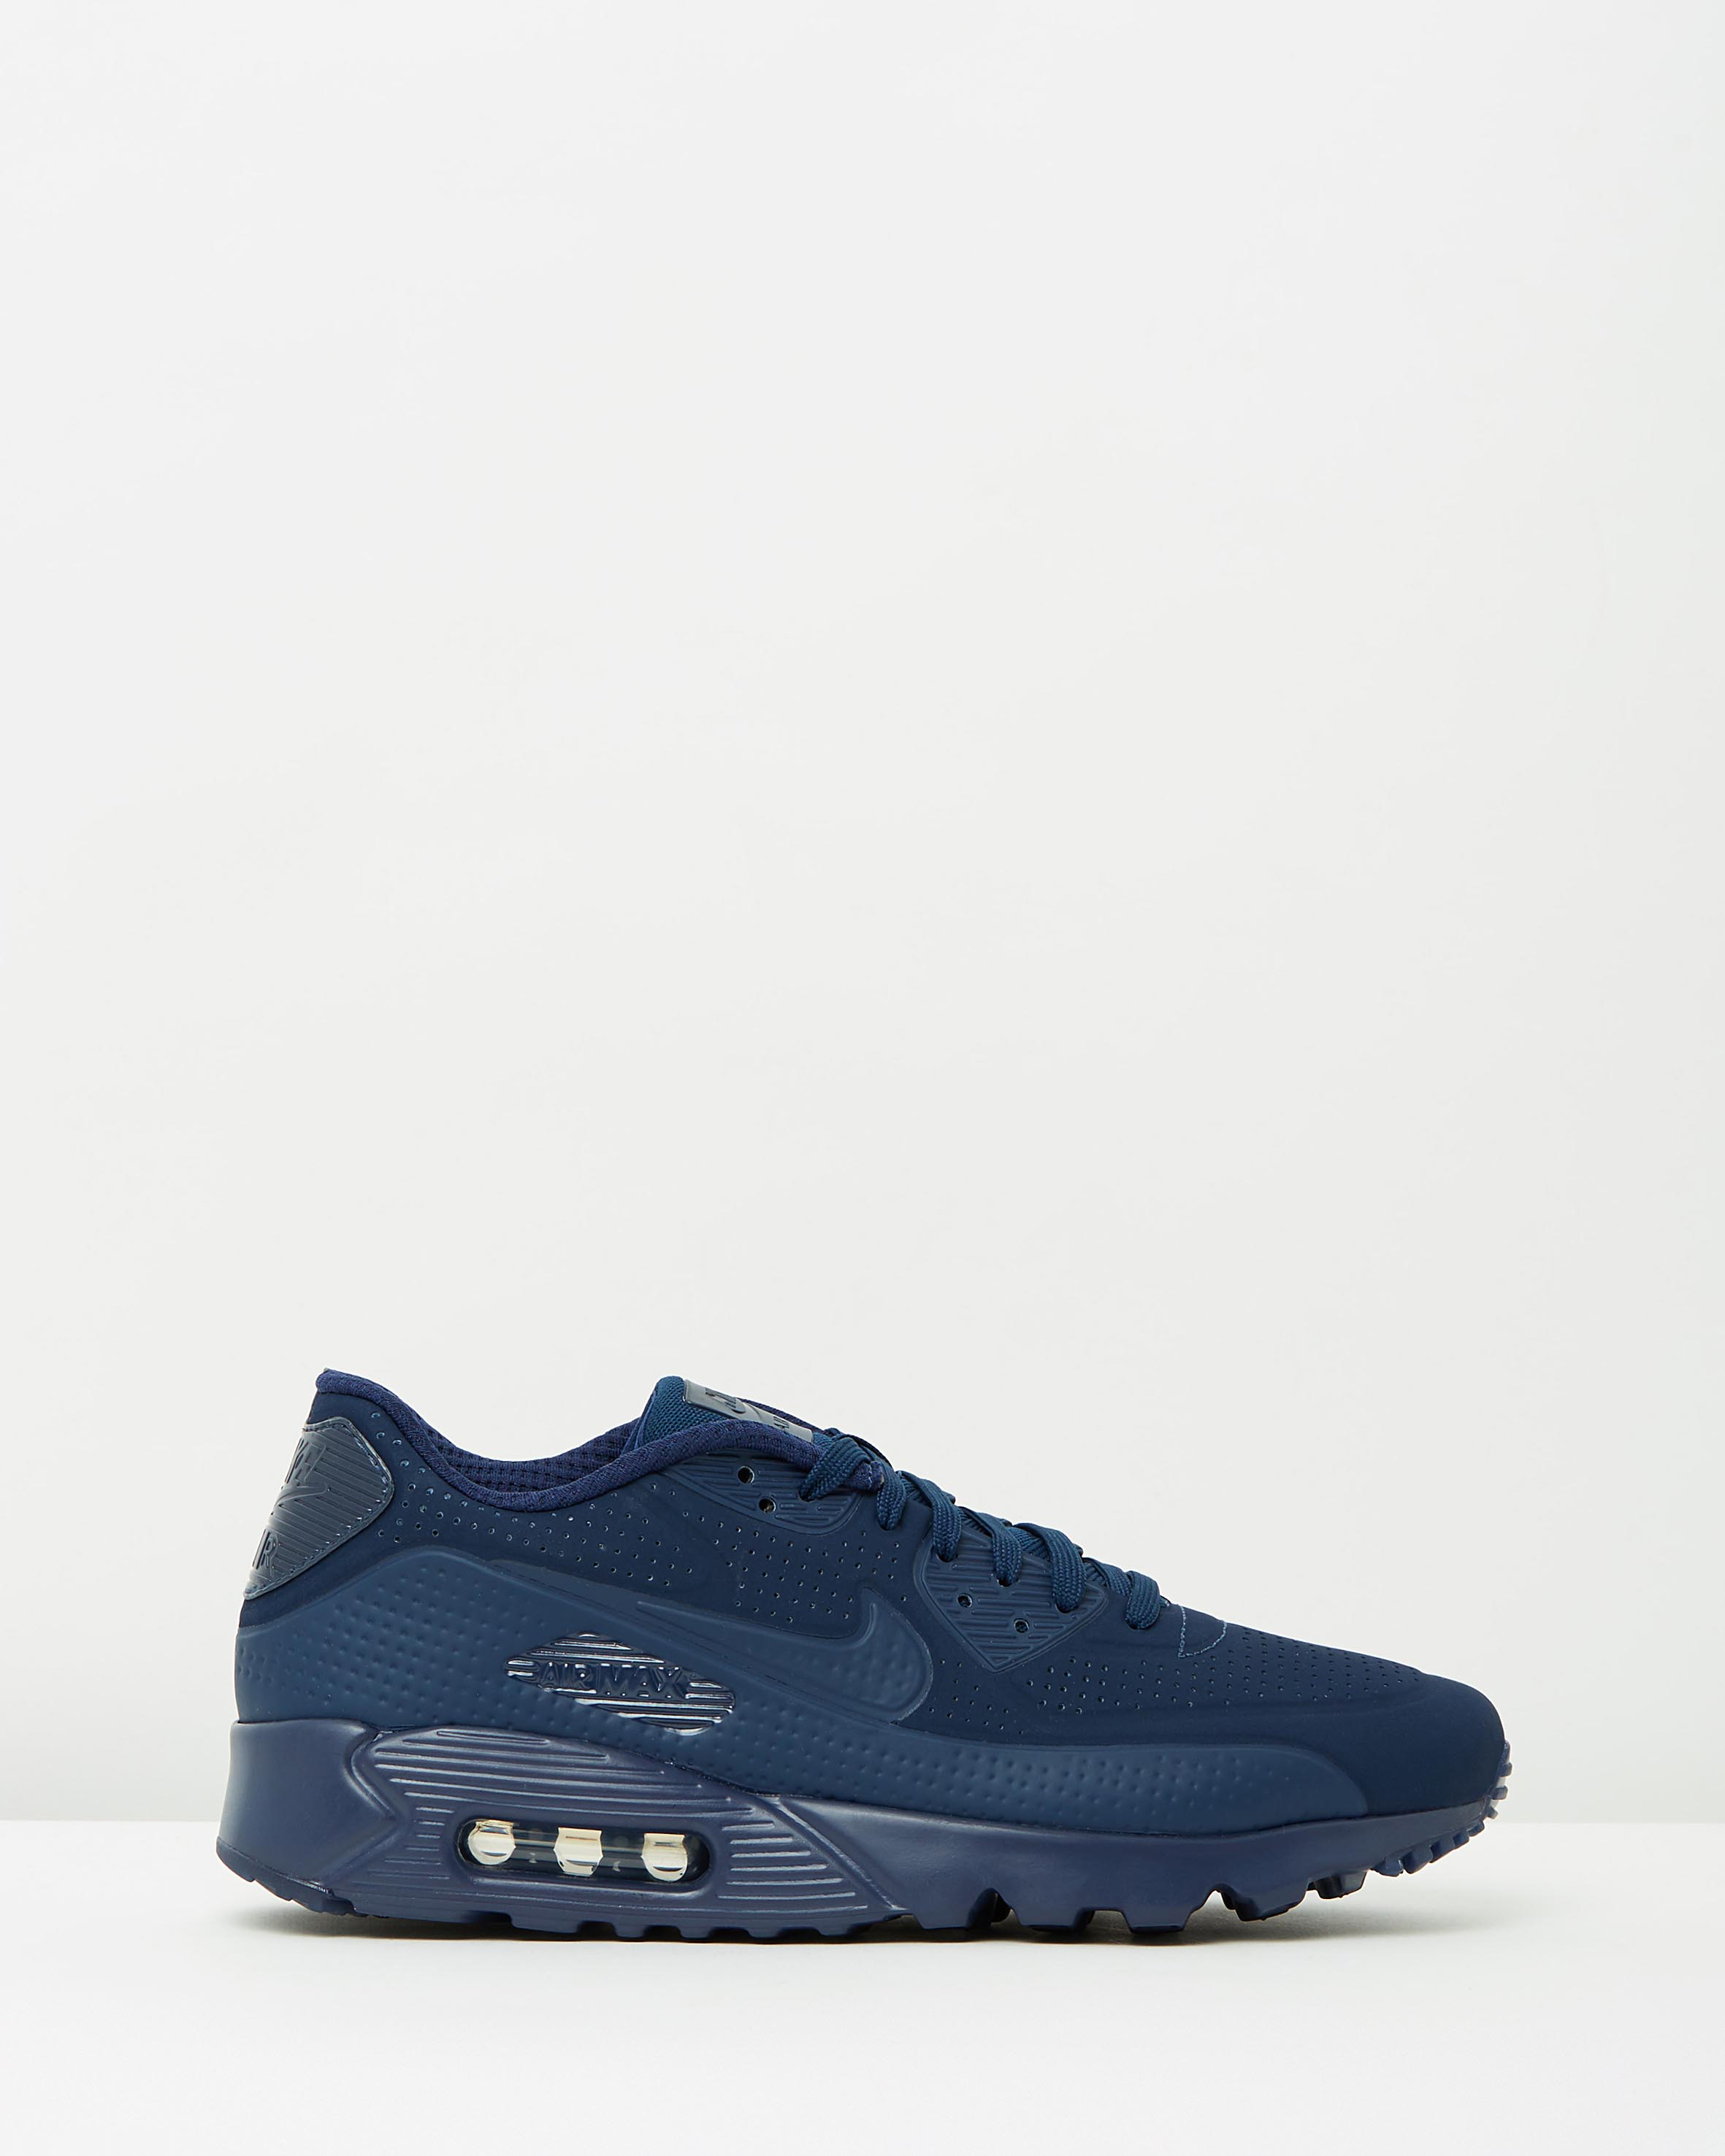 quality design dc752 9b978 Nike Air Max 90 Ultra Moire Midnight Blue 1 ...